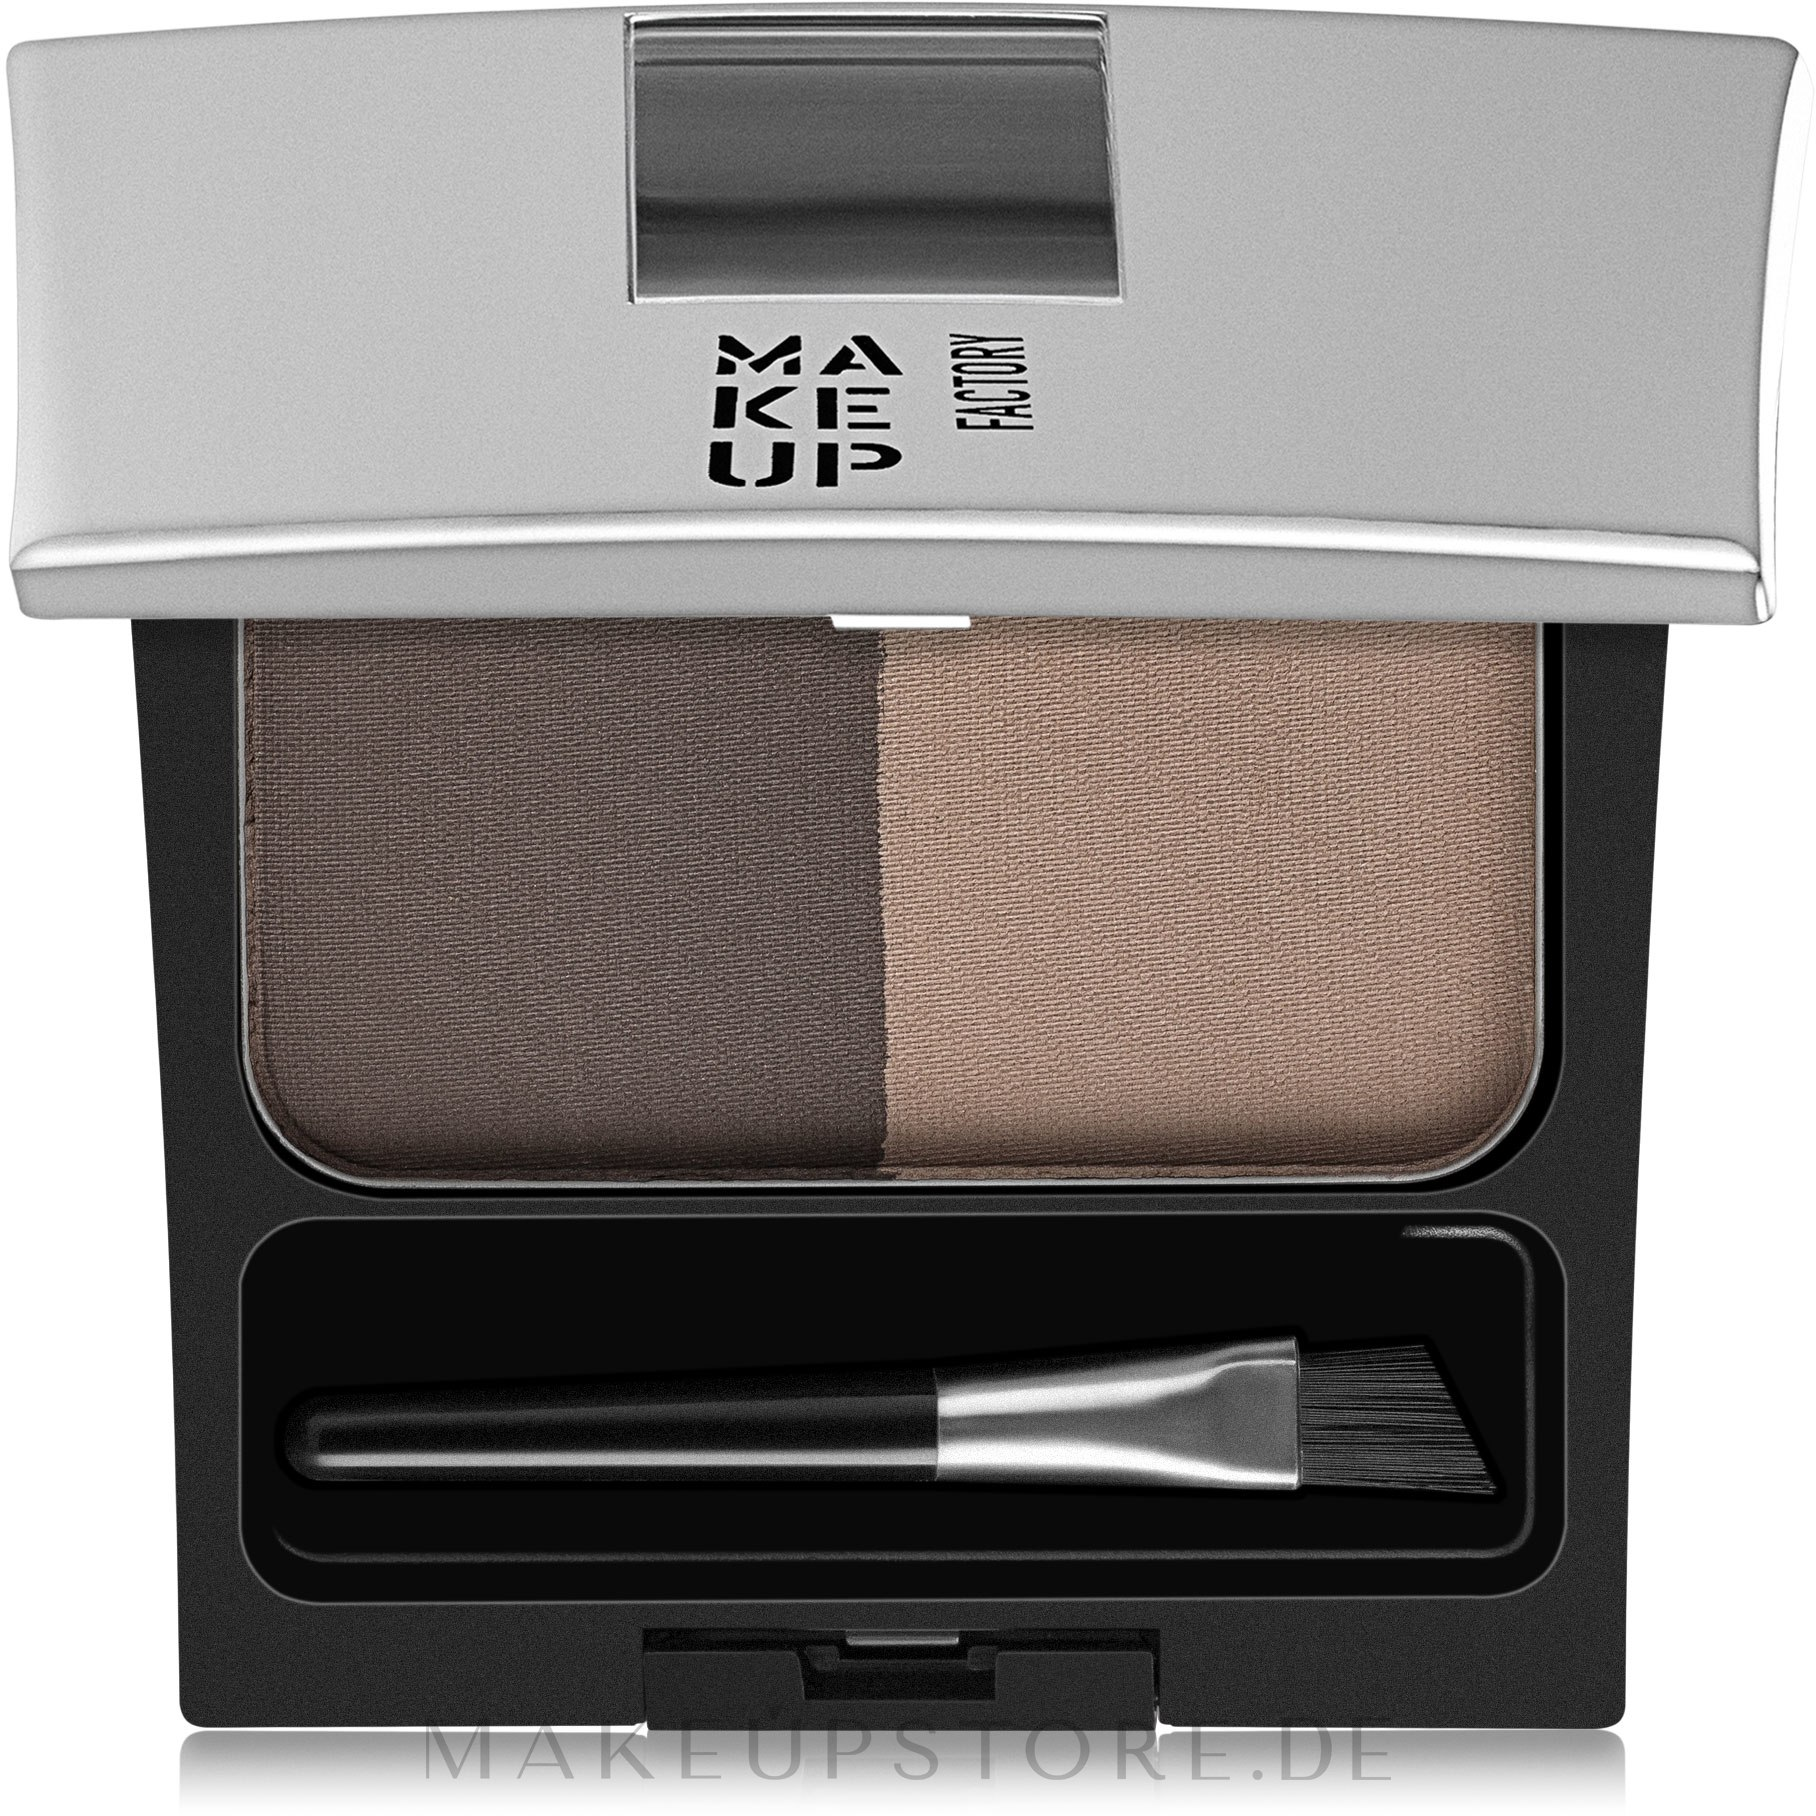 Augenbrauenpuder Duo - Make Up Factory Eye Brow Powder — Bild 2